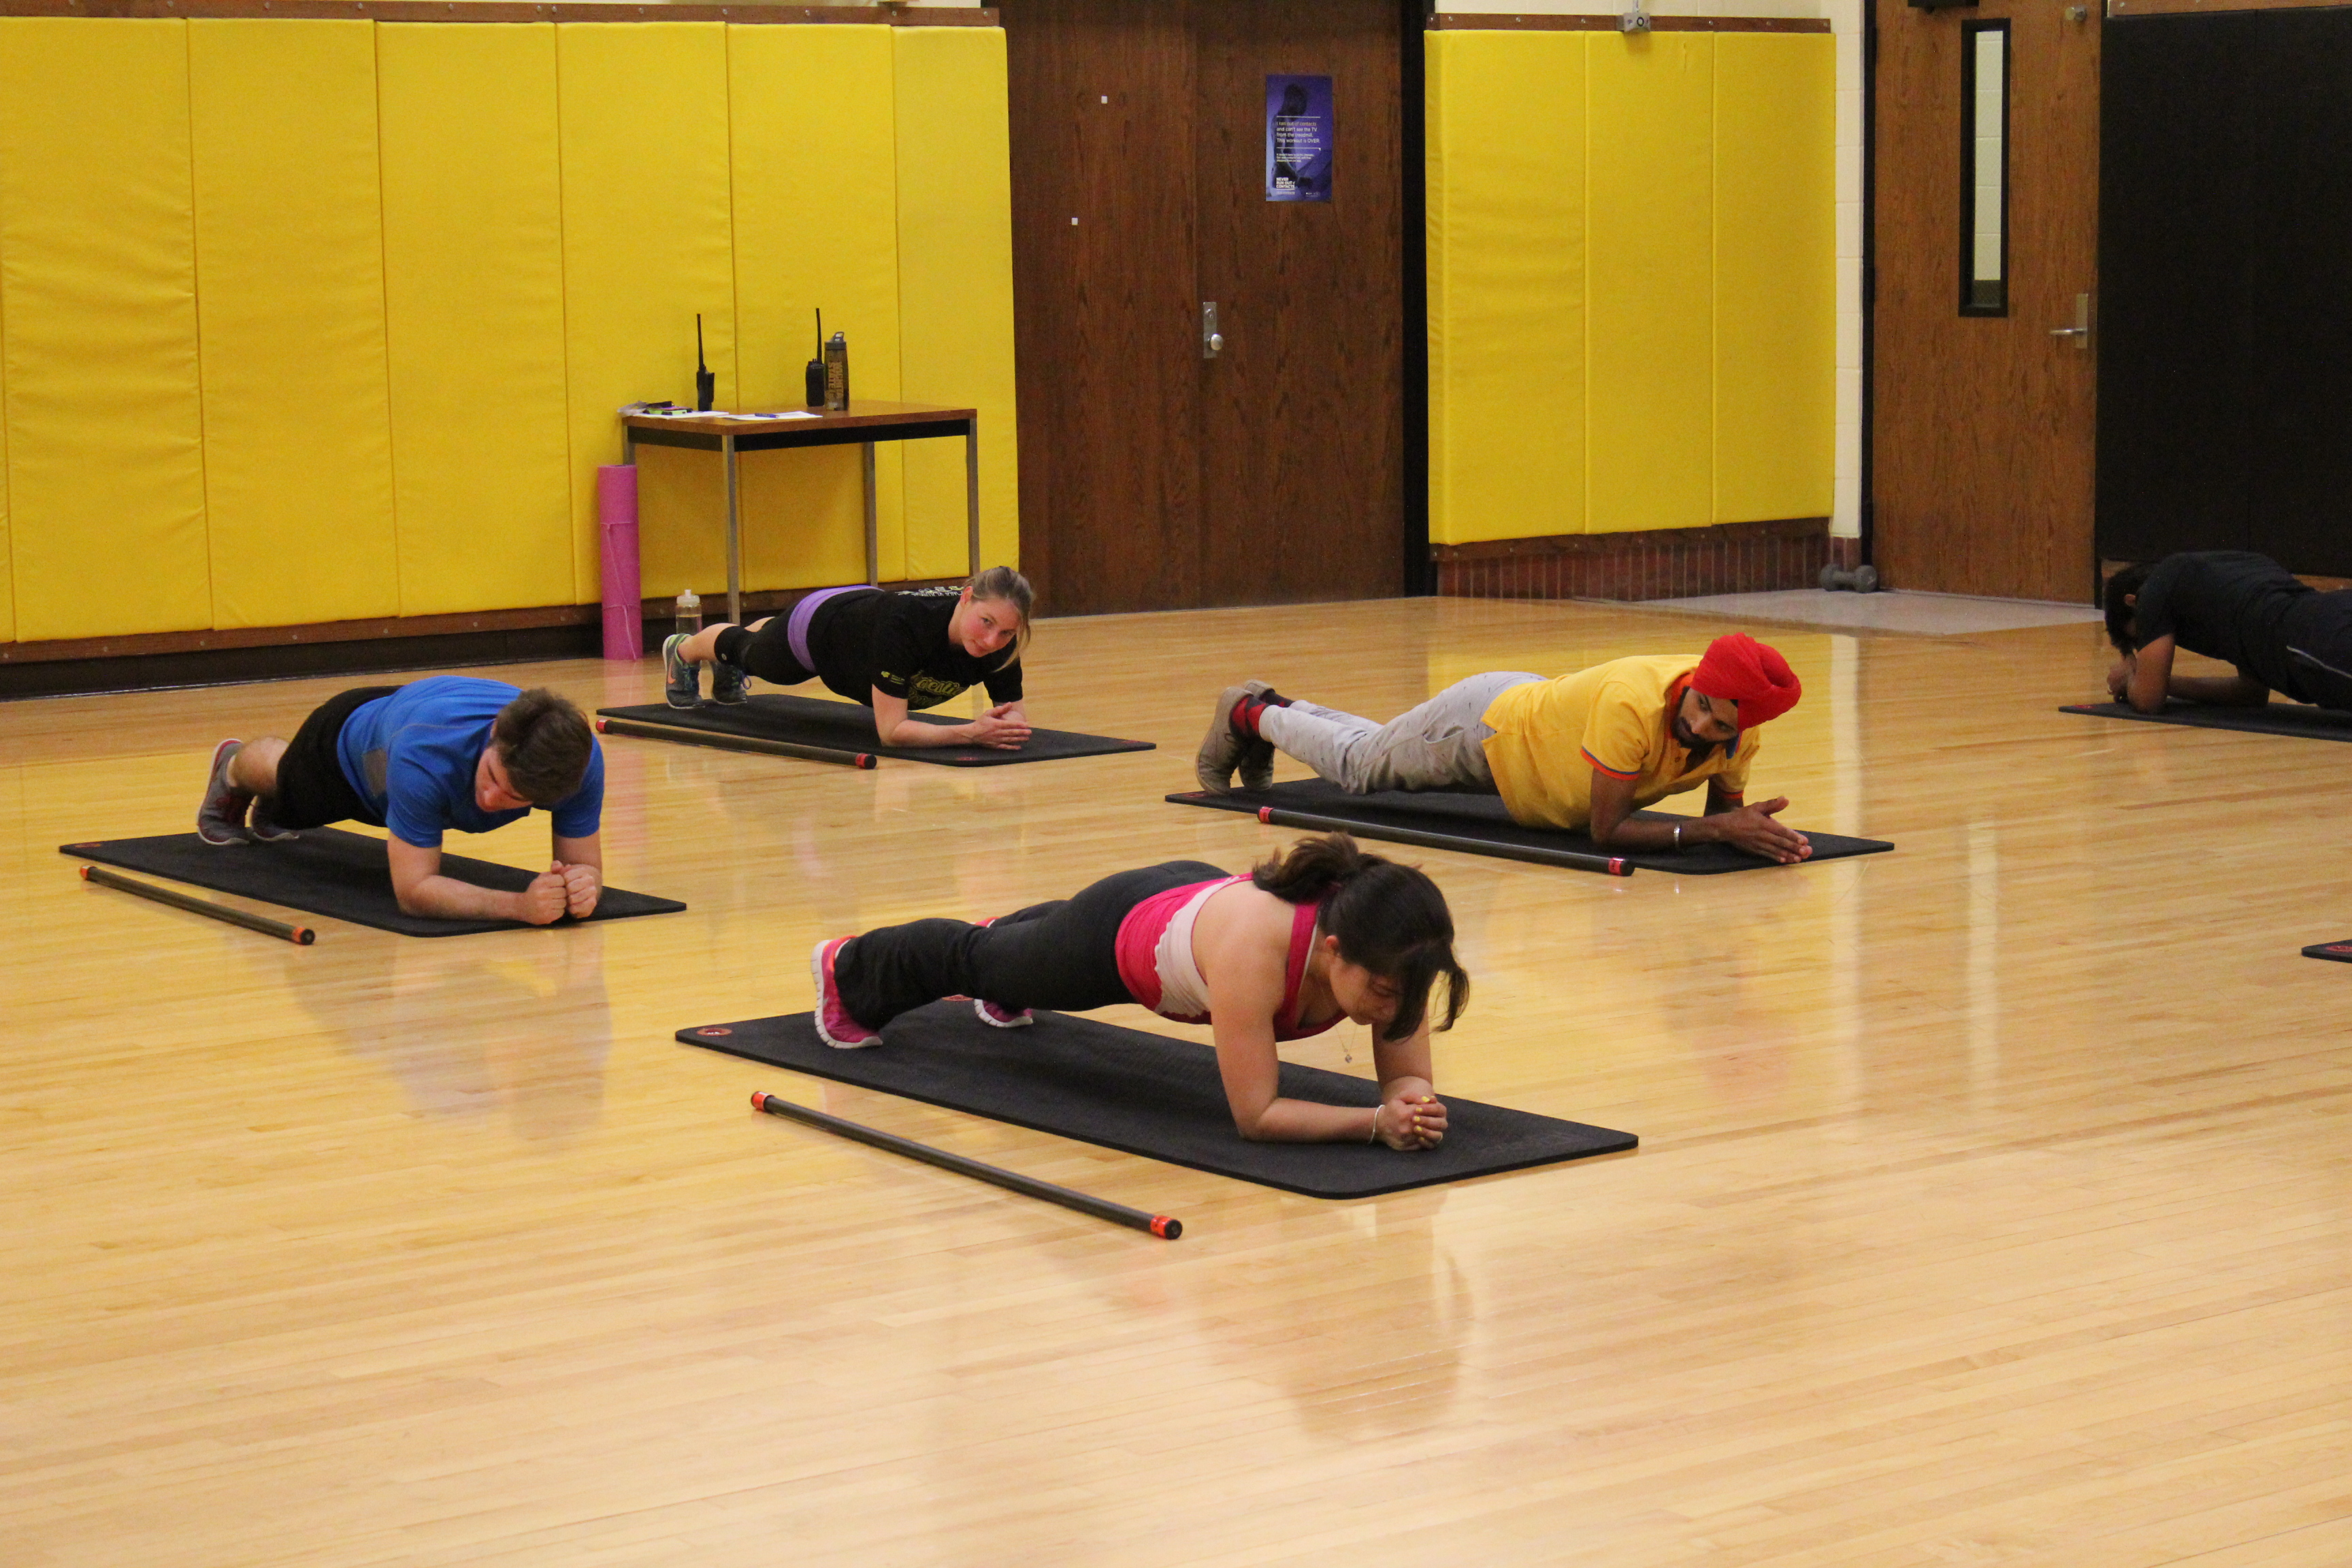 four people on the floor on yoga mats. They are holding planks on their elbows.